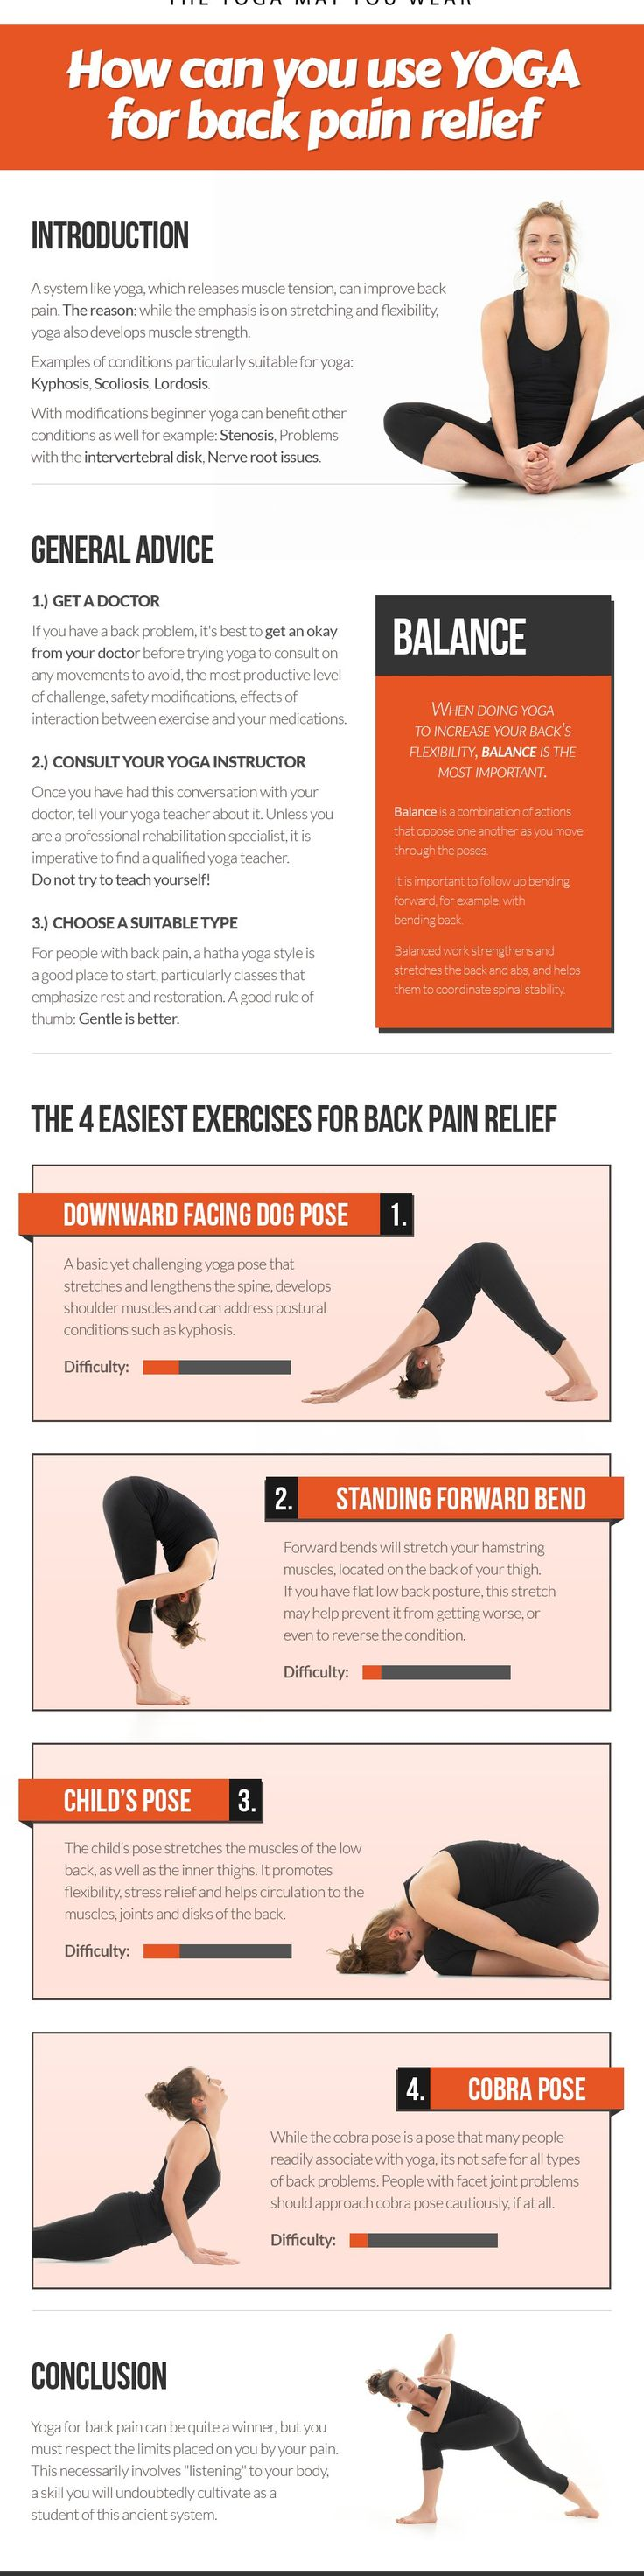 Yoga for back pain relief>>>>> just what I need after standing all day at my new job. Definitely not used to it yet.